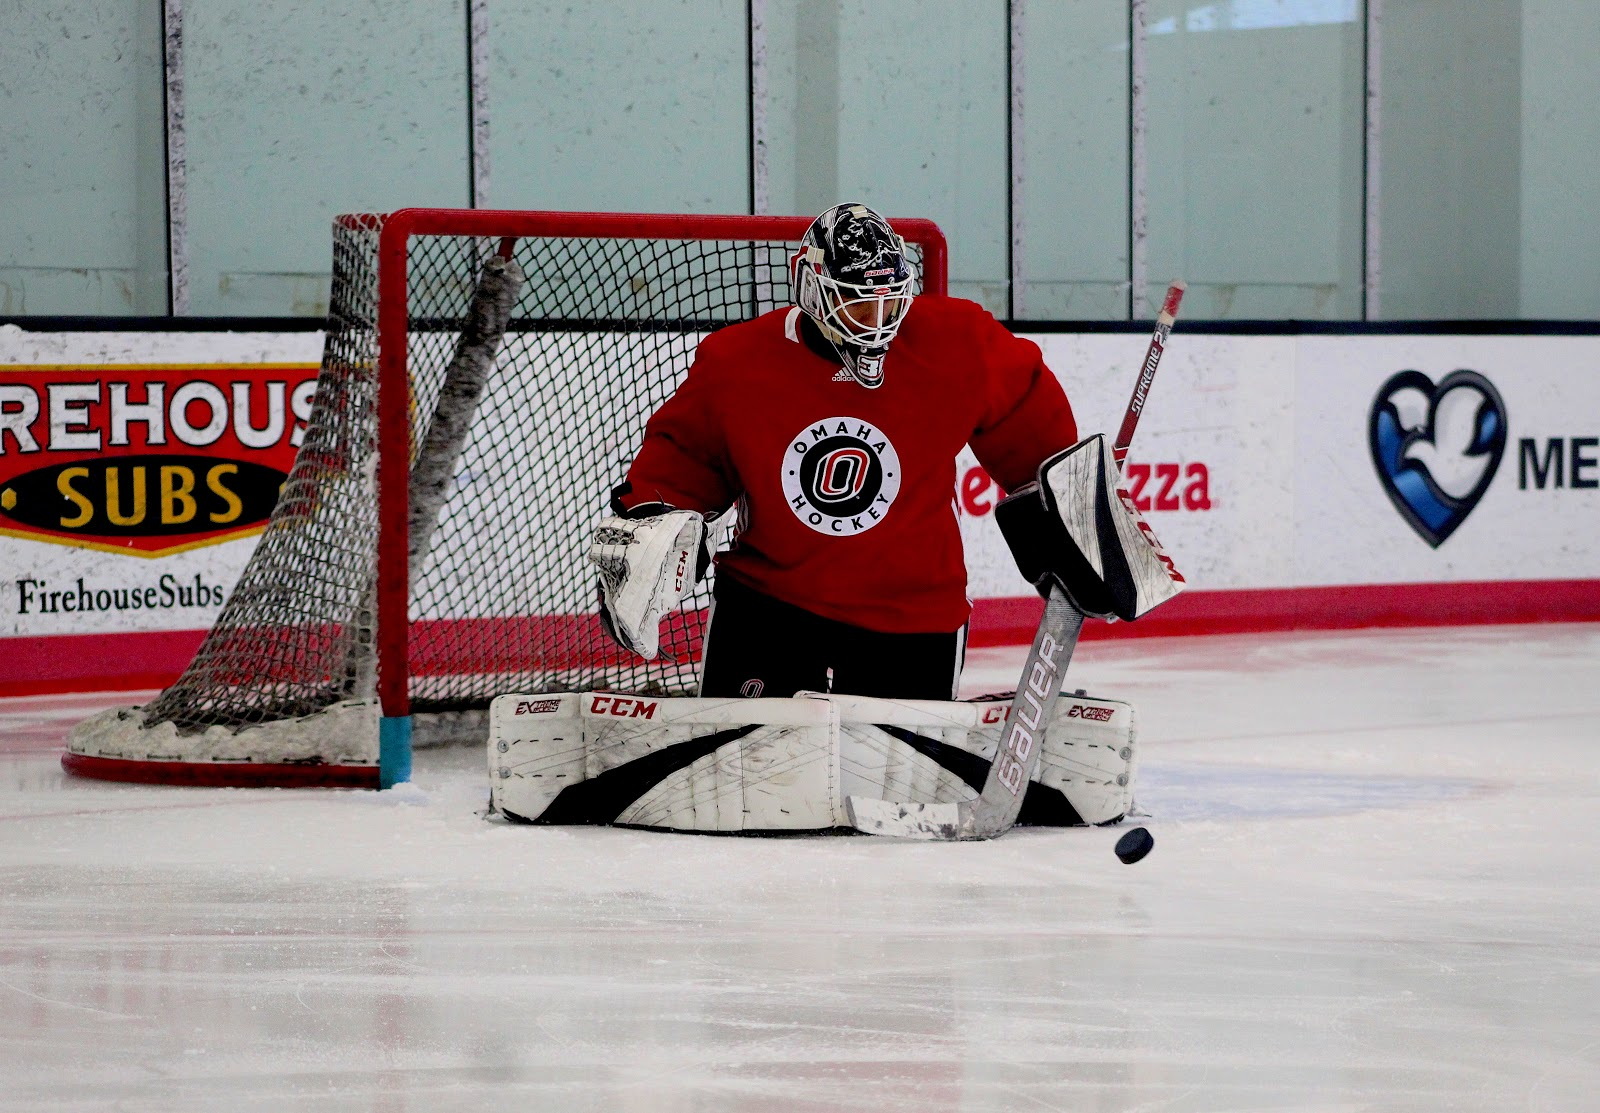 The UNO hockey goalkeeper makes a save in practice